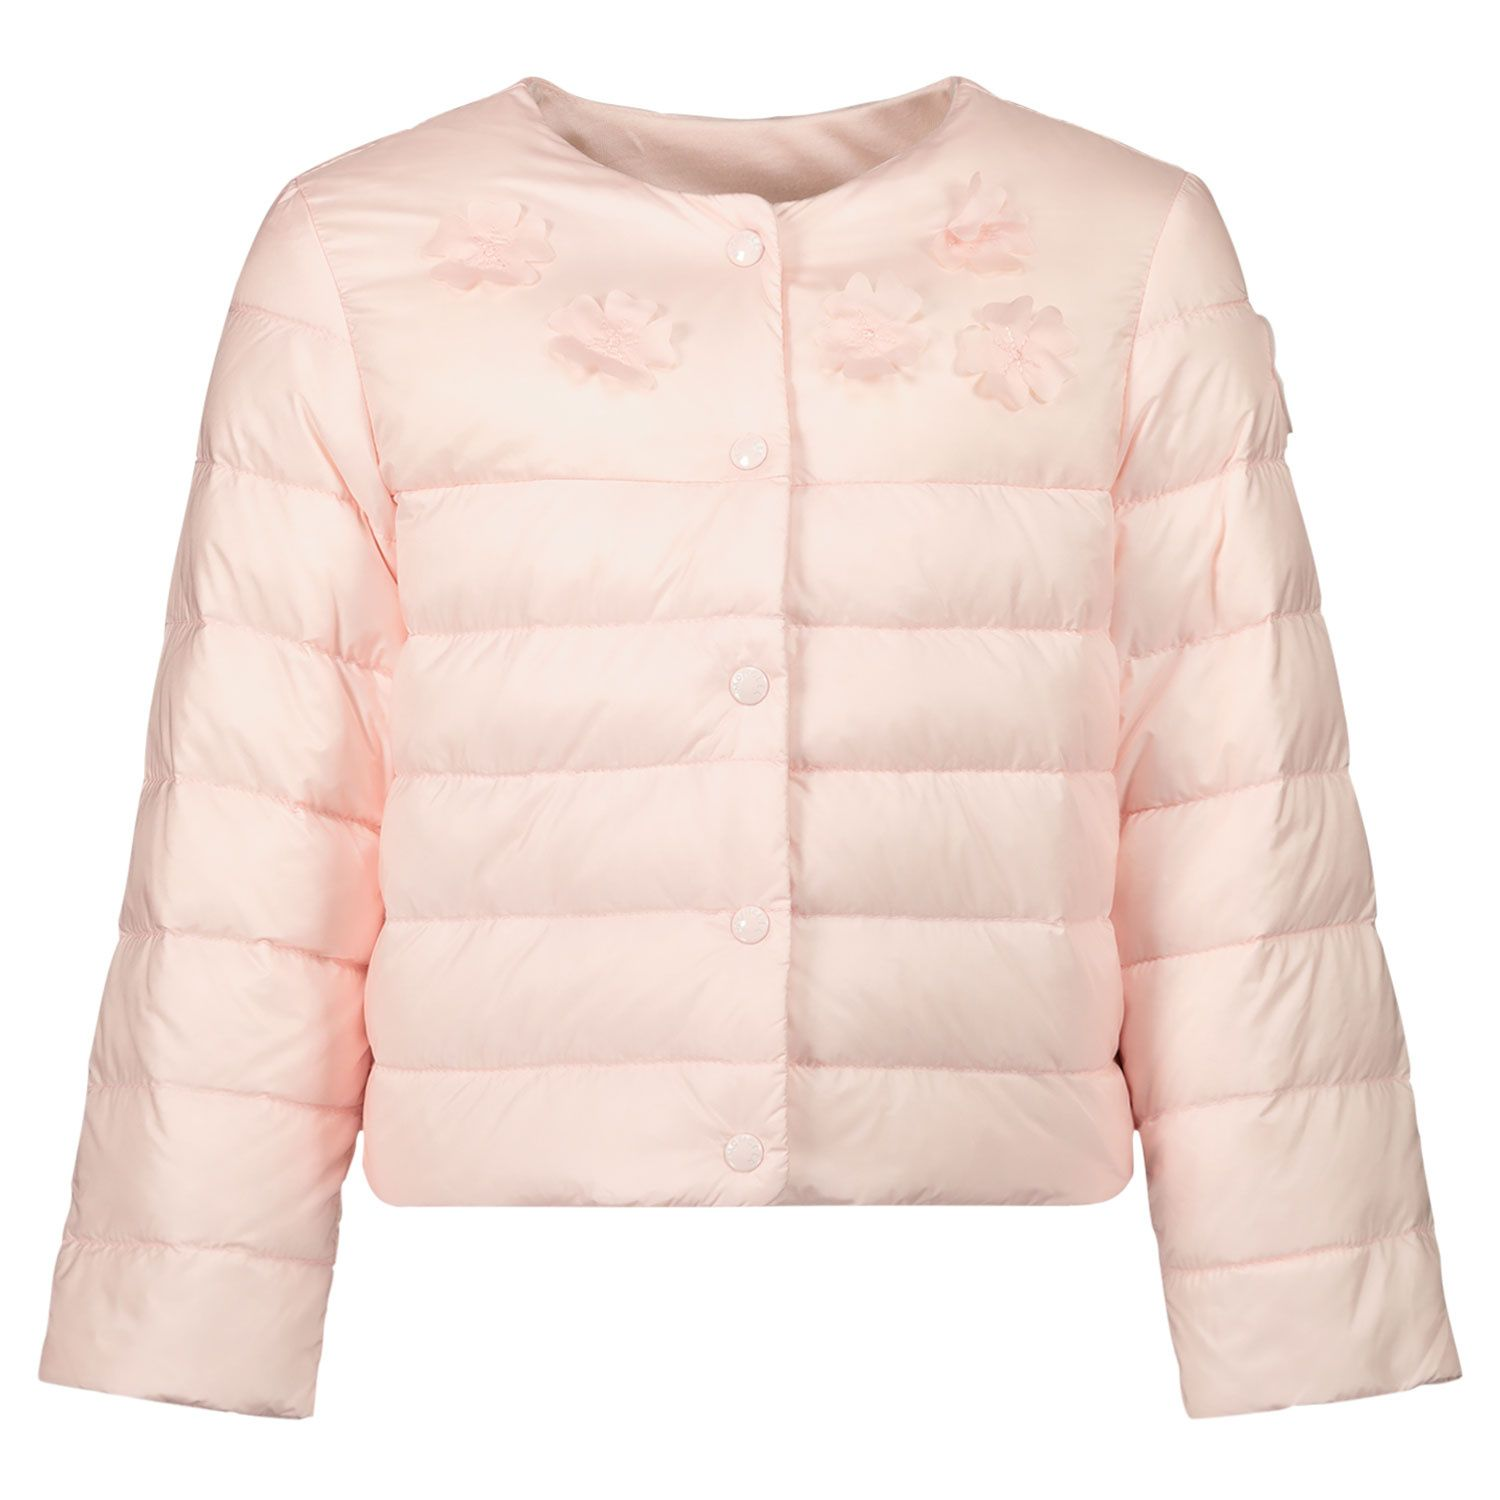 Picture of Moncler 1A55310 baby coat light pink